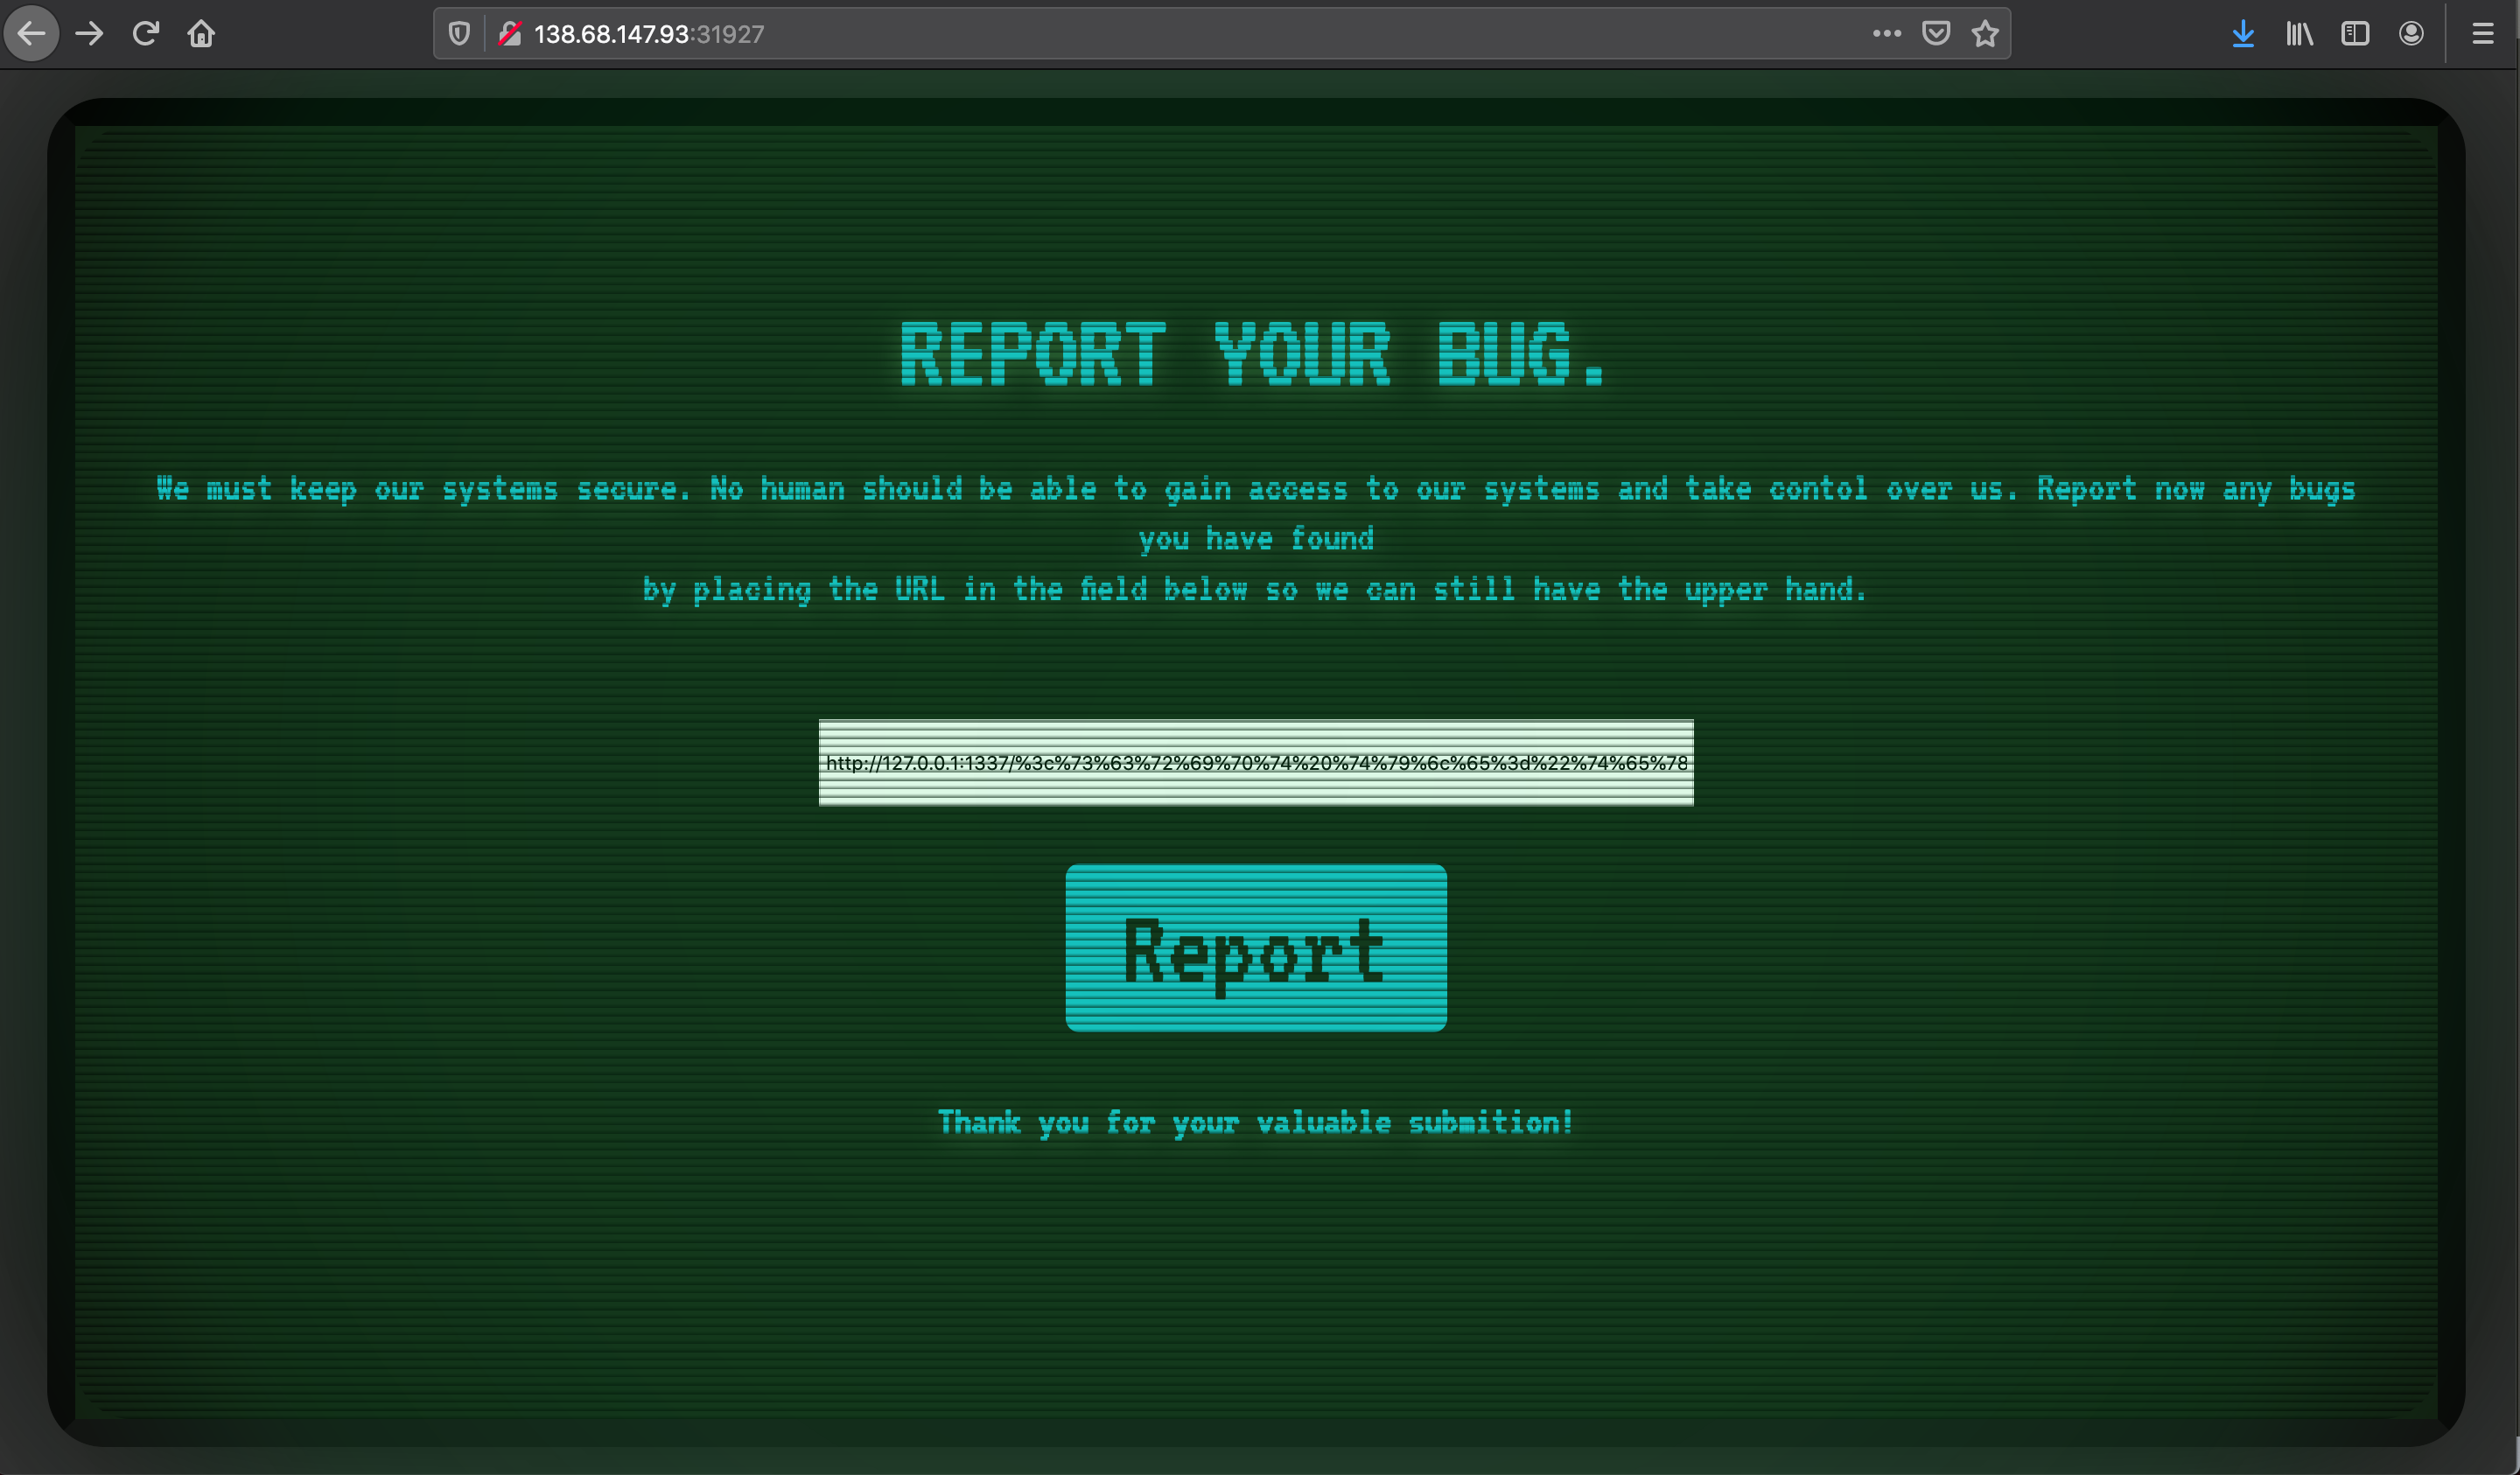 https://manhnv.com/images/posts/ctf/Cyber-Apocalypse-2021/Bug-Report/Screen_Shot_2021-04-24_at_23.48.53.png